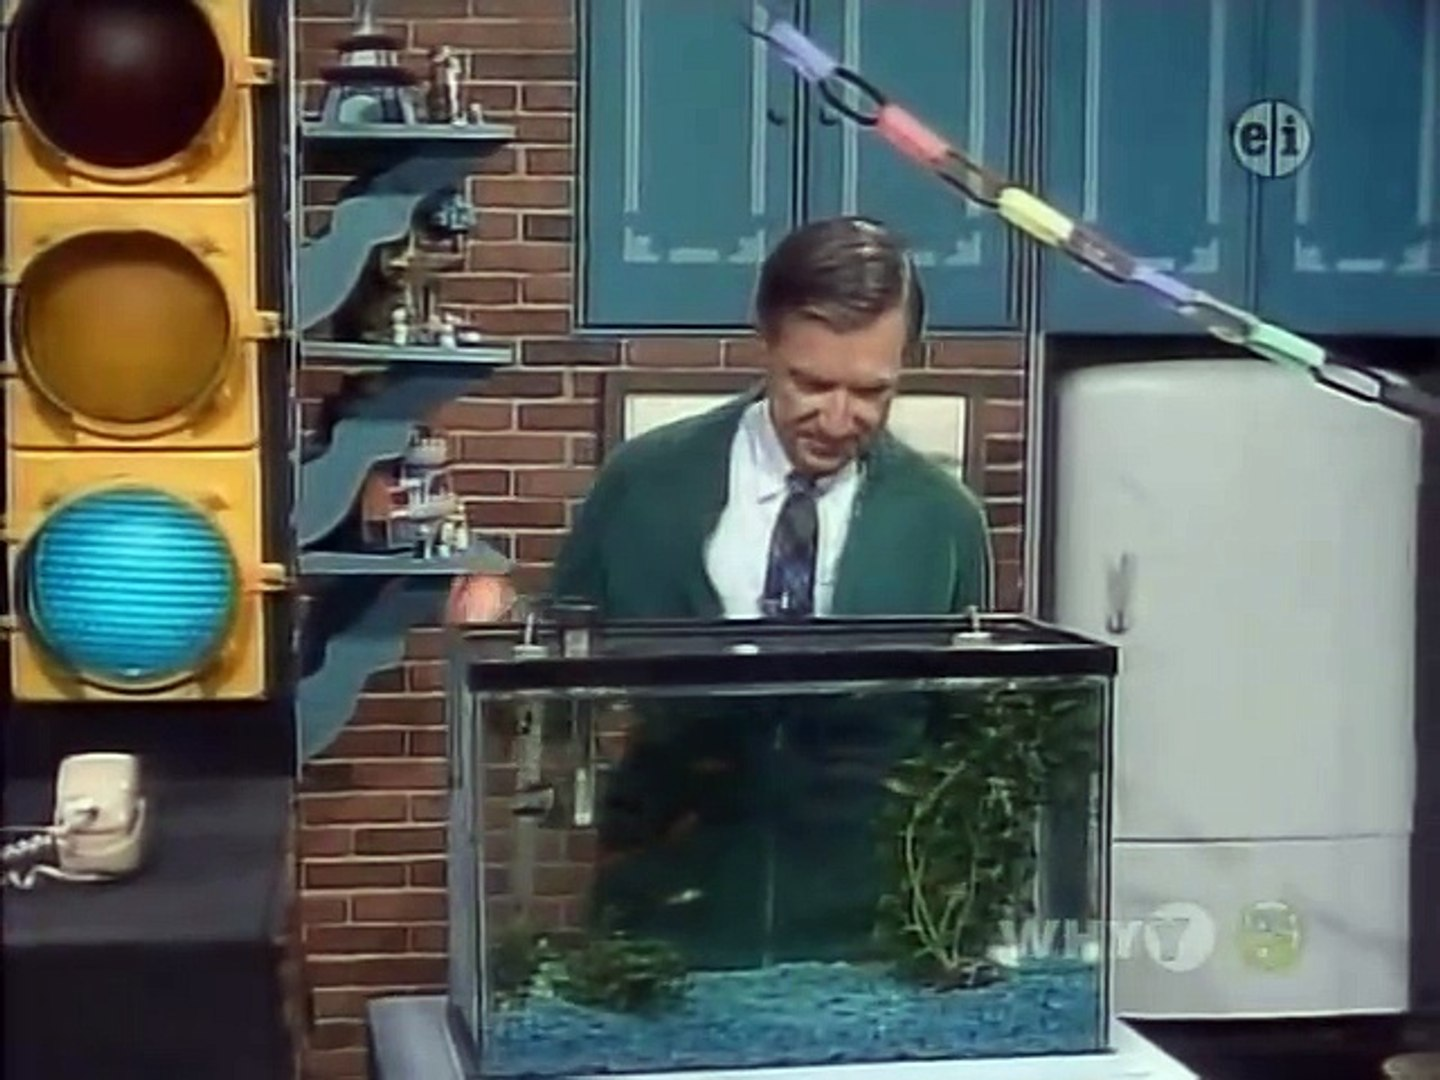 Mister Rogers Neighborhood 22x14 Learning Video Dailymotion